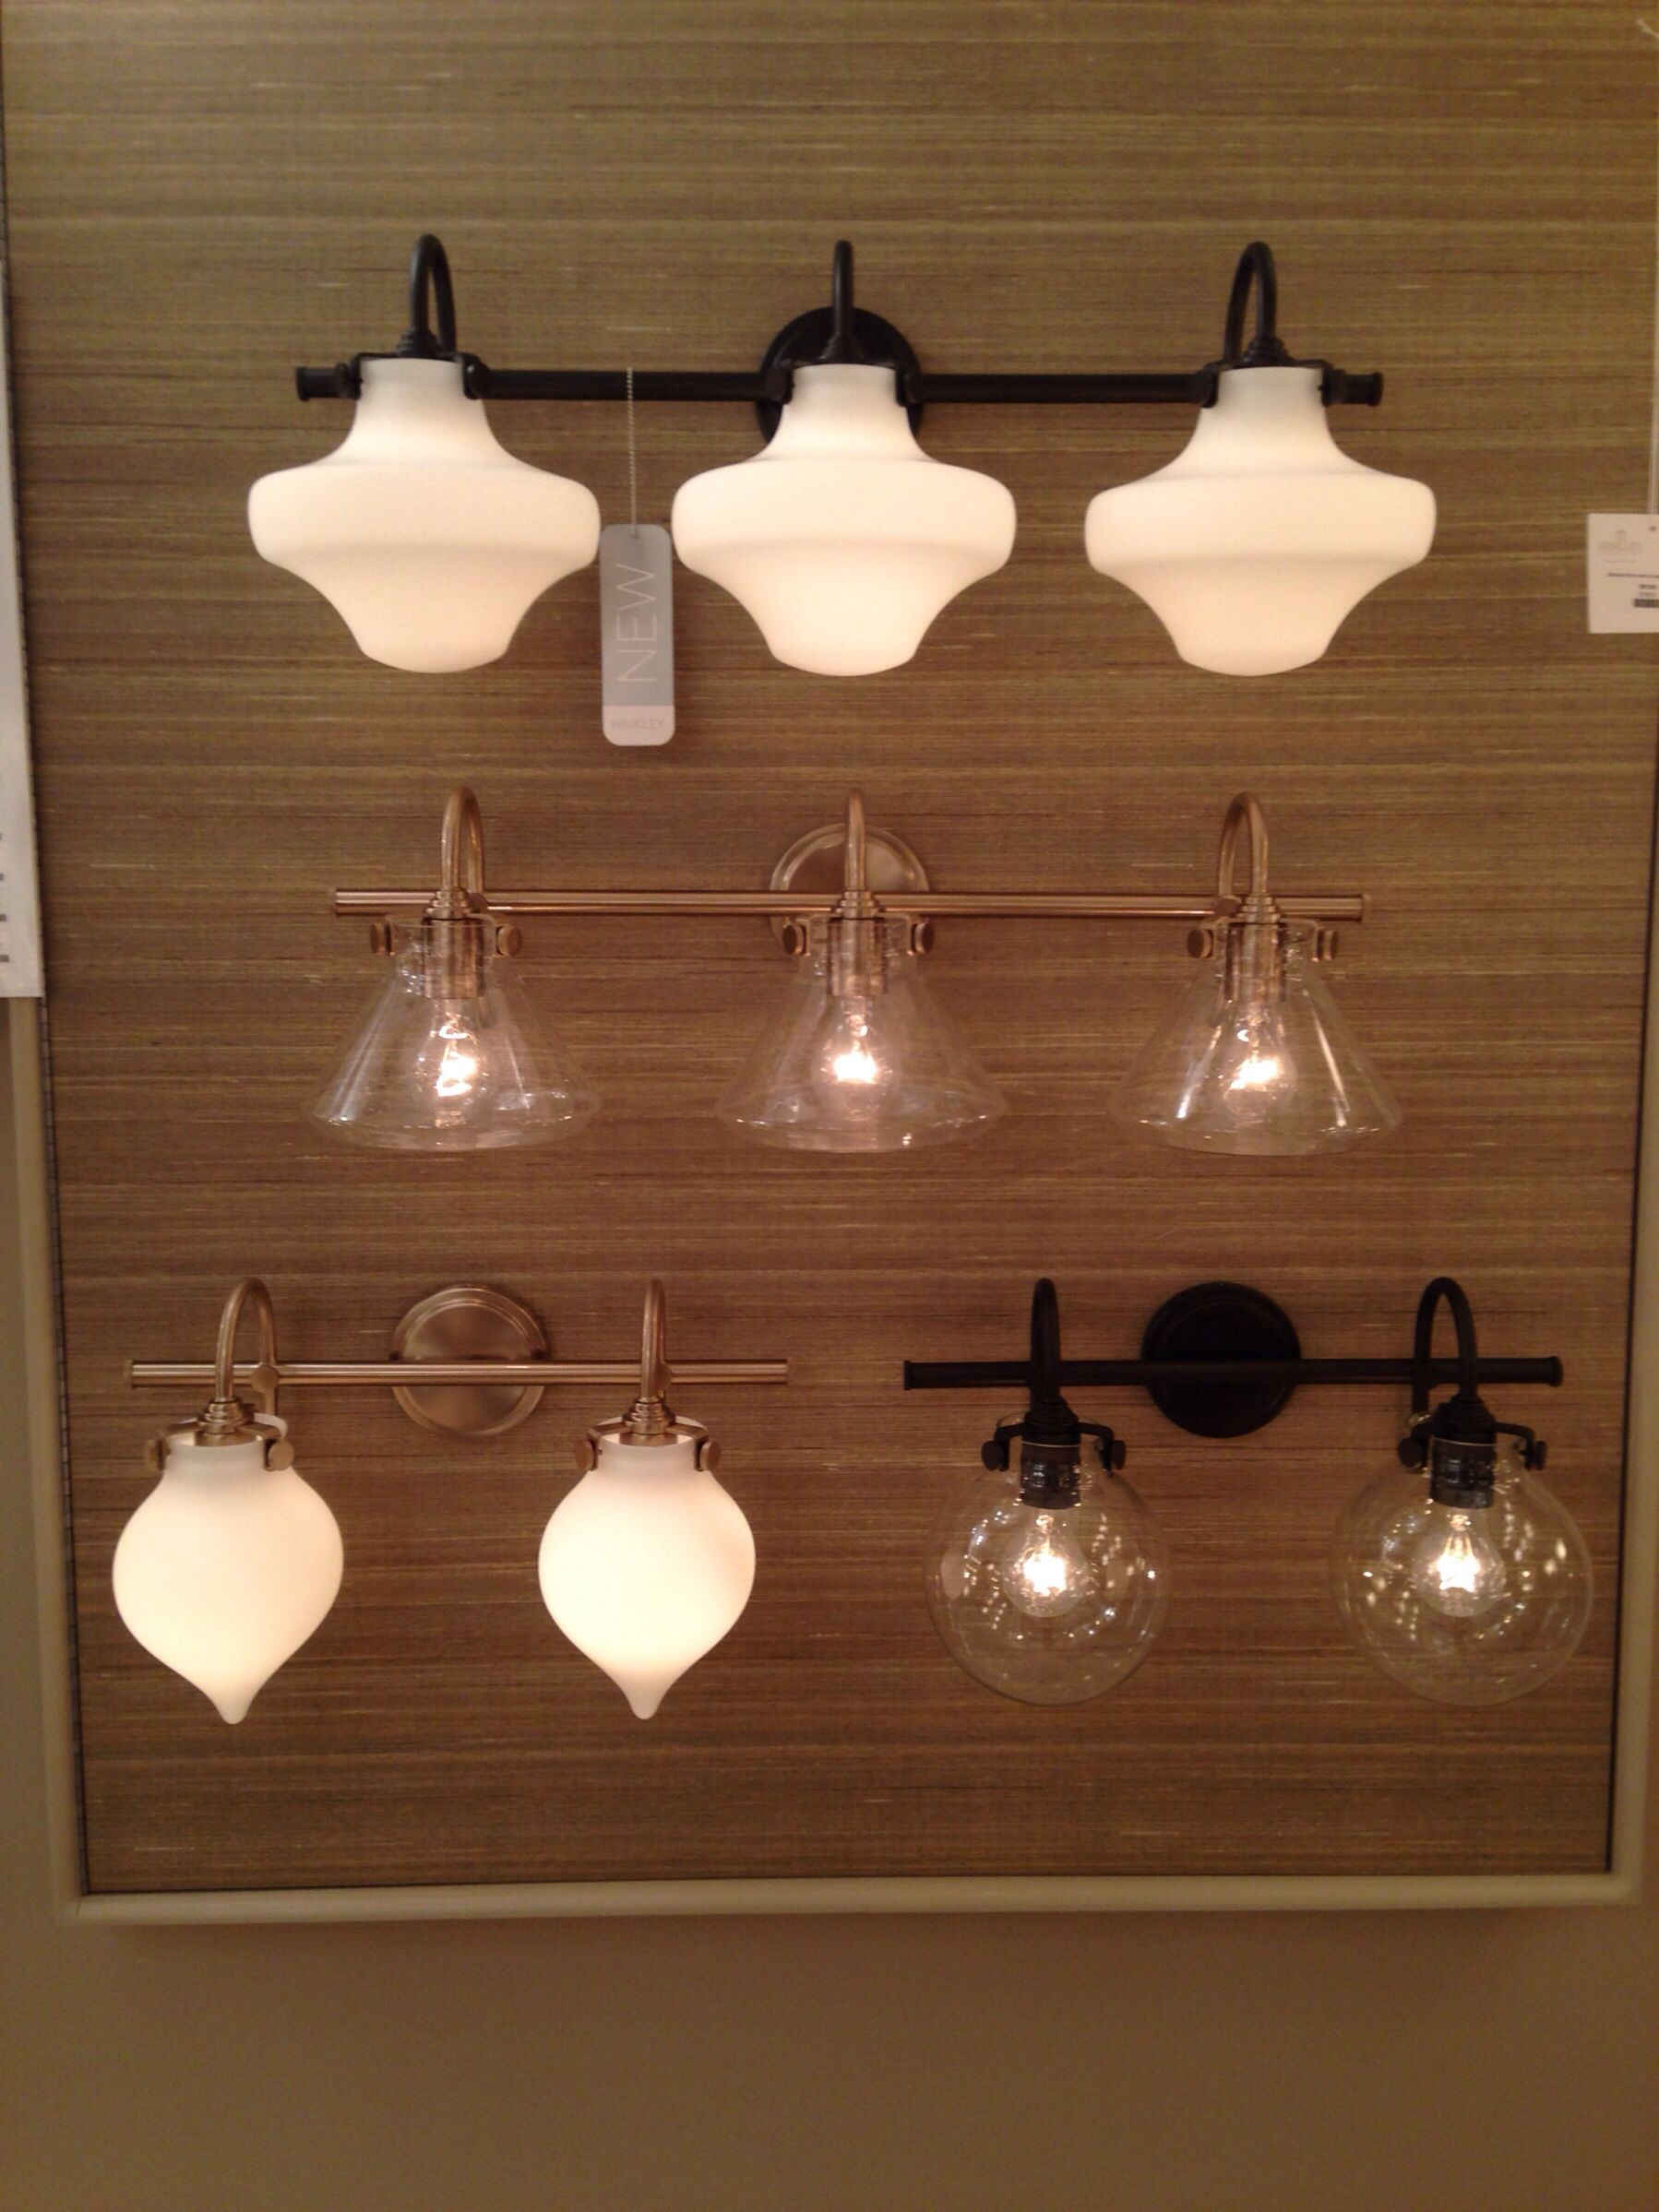 Pottery barn inspired vanity lights by hinkley lighting new finishes and styles at dallas lighting market